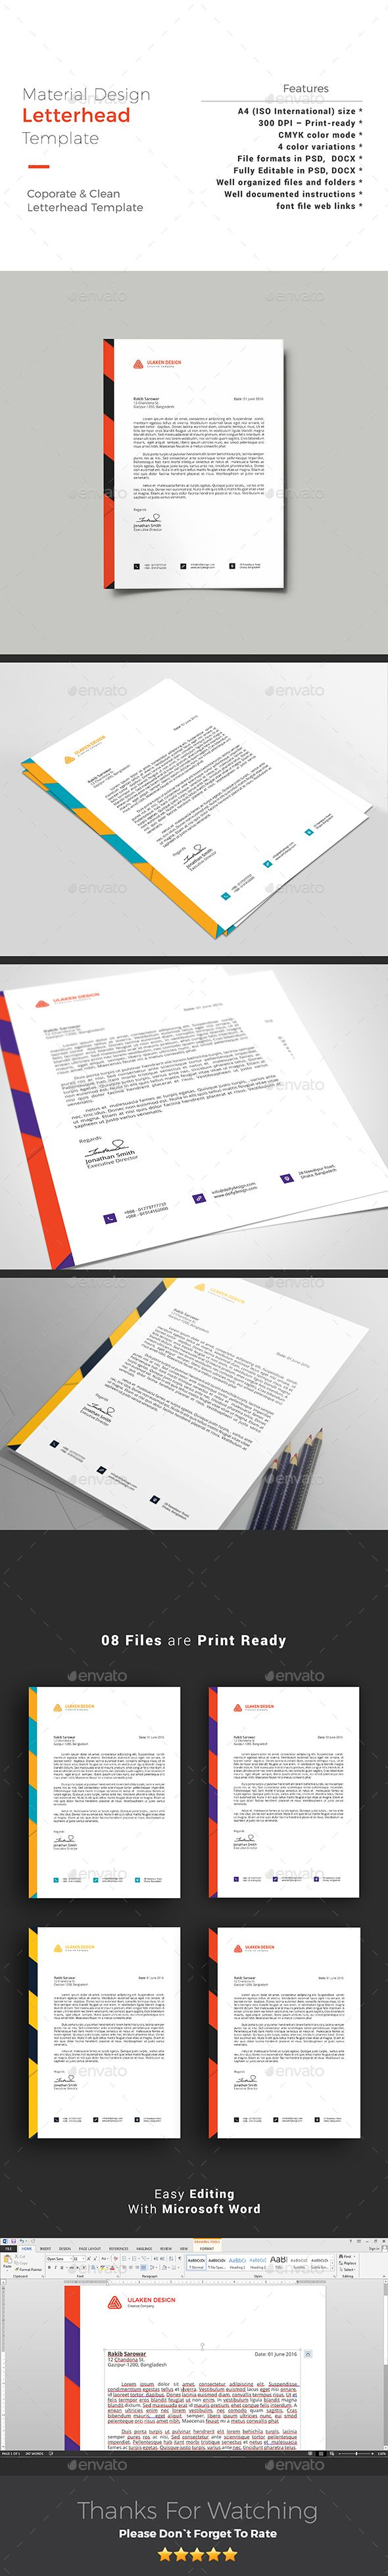 22 best letterhead template images on pinterest letterhead material design letterhead spiritdancerdesigns Choice Image